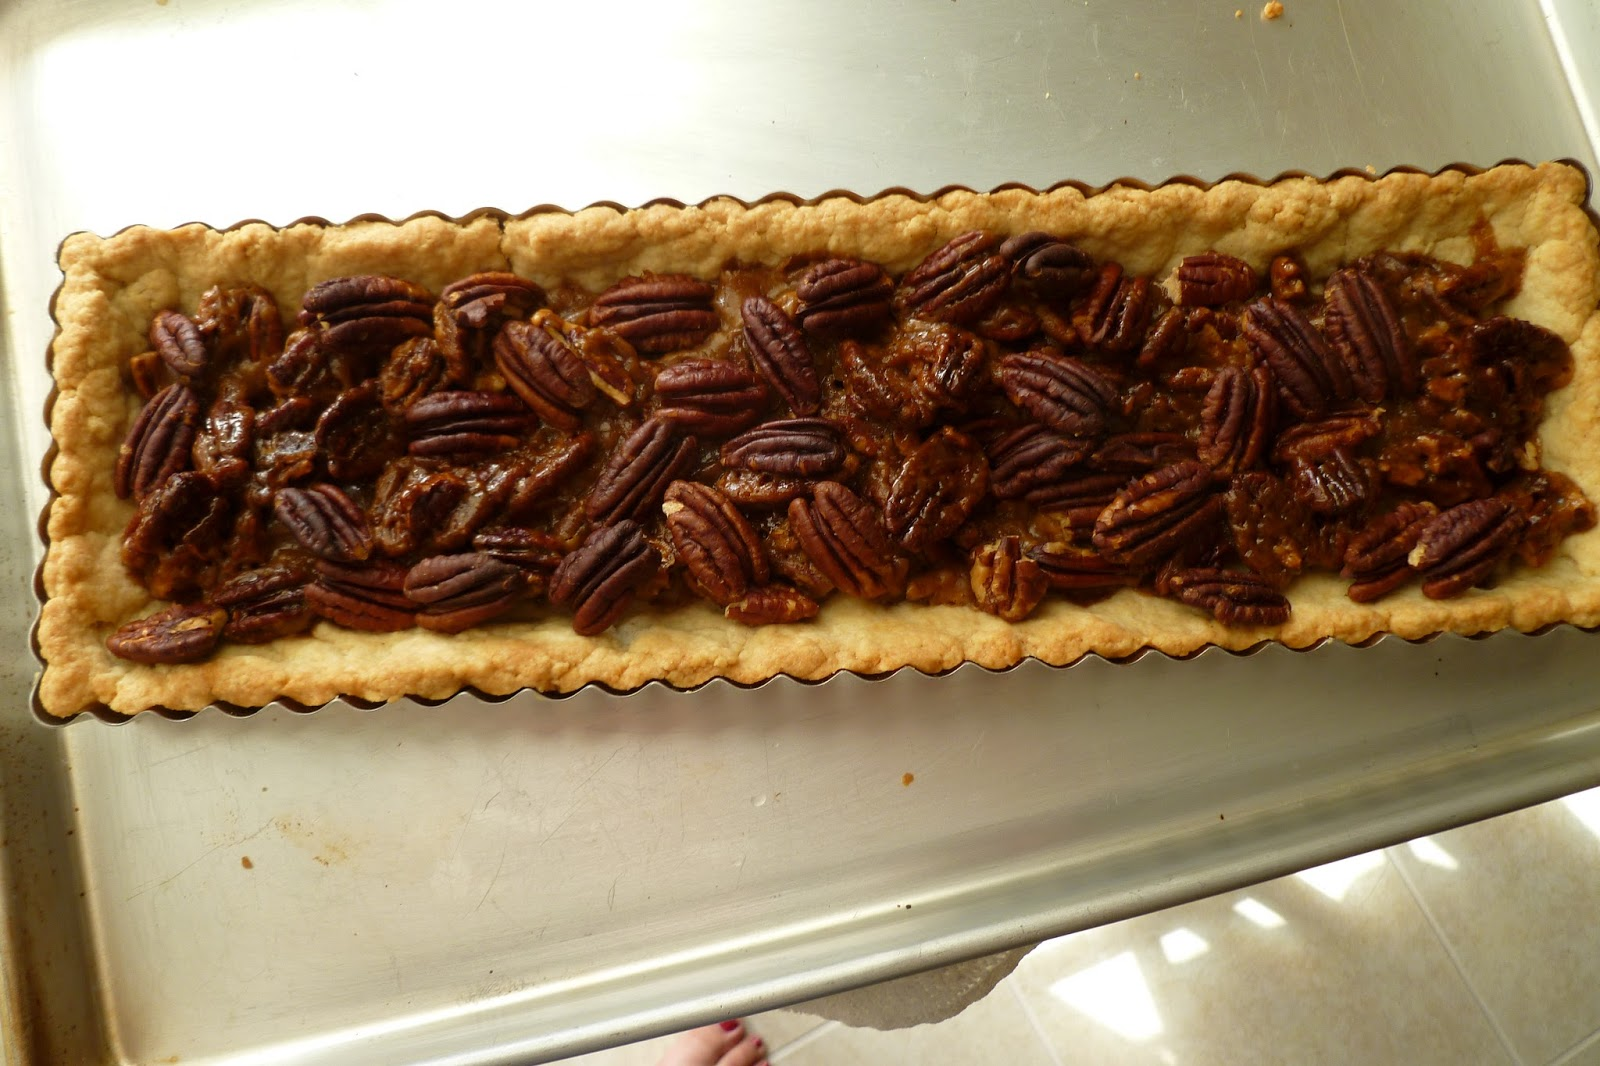 The Pastry Chef's Baking: Chocolate Pecan Caramel Shortbread